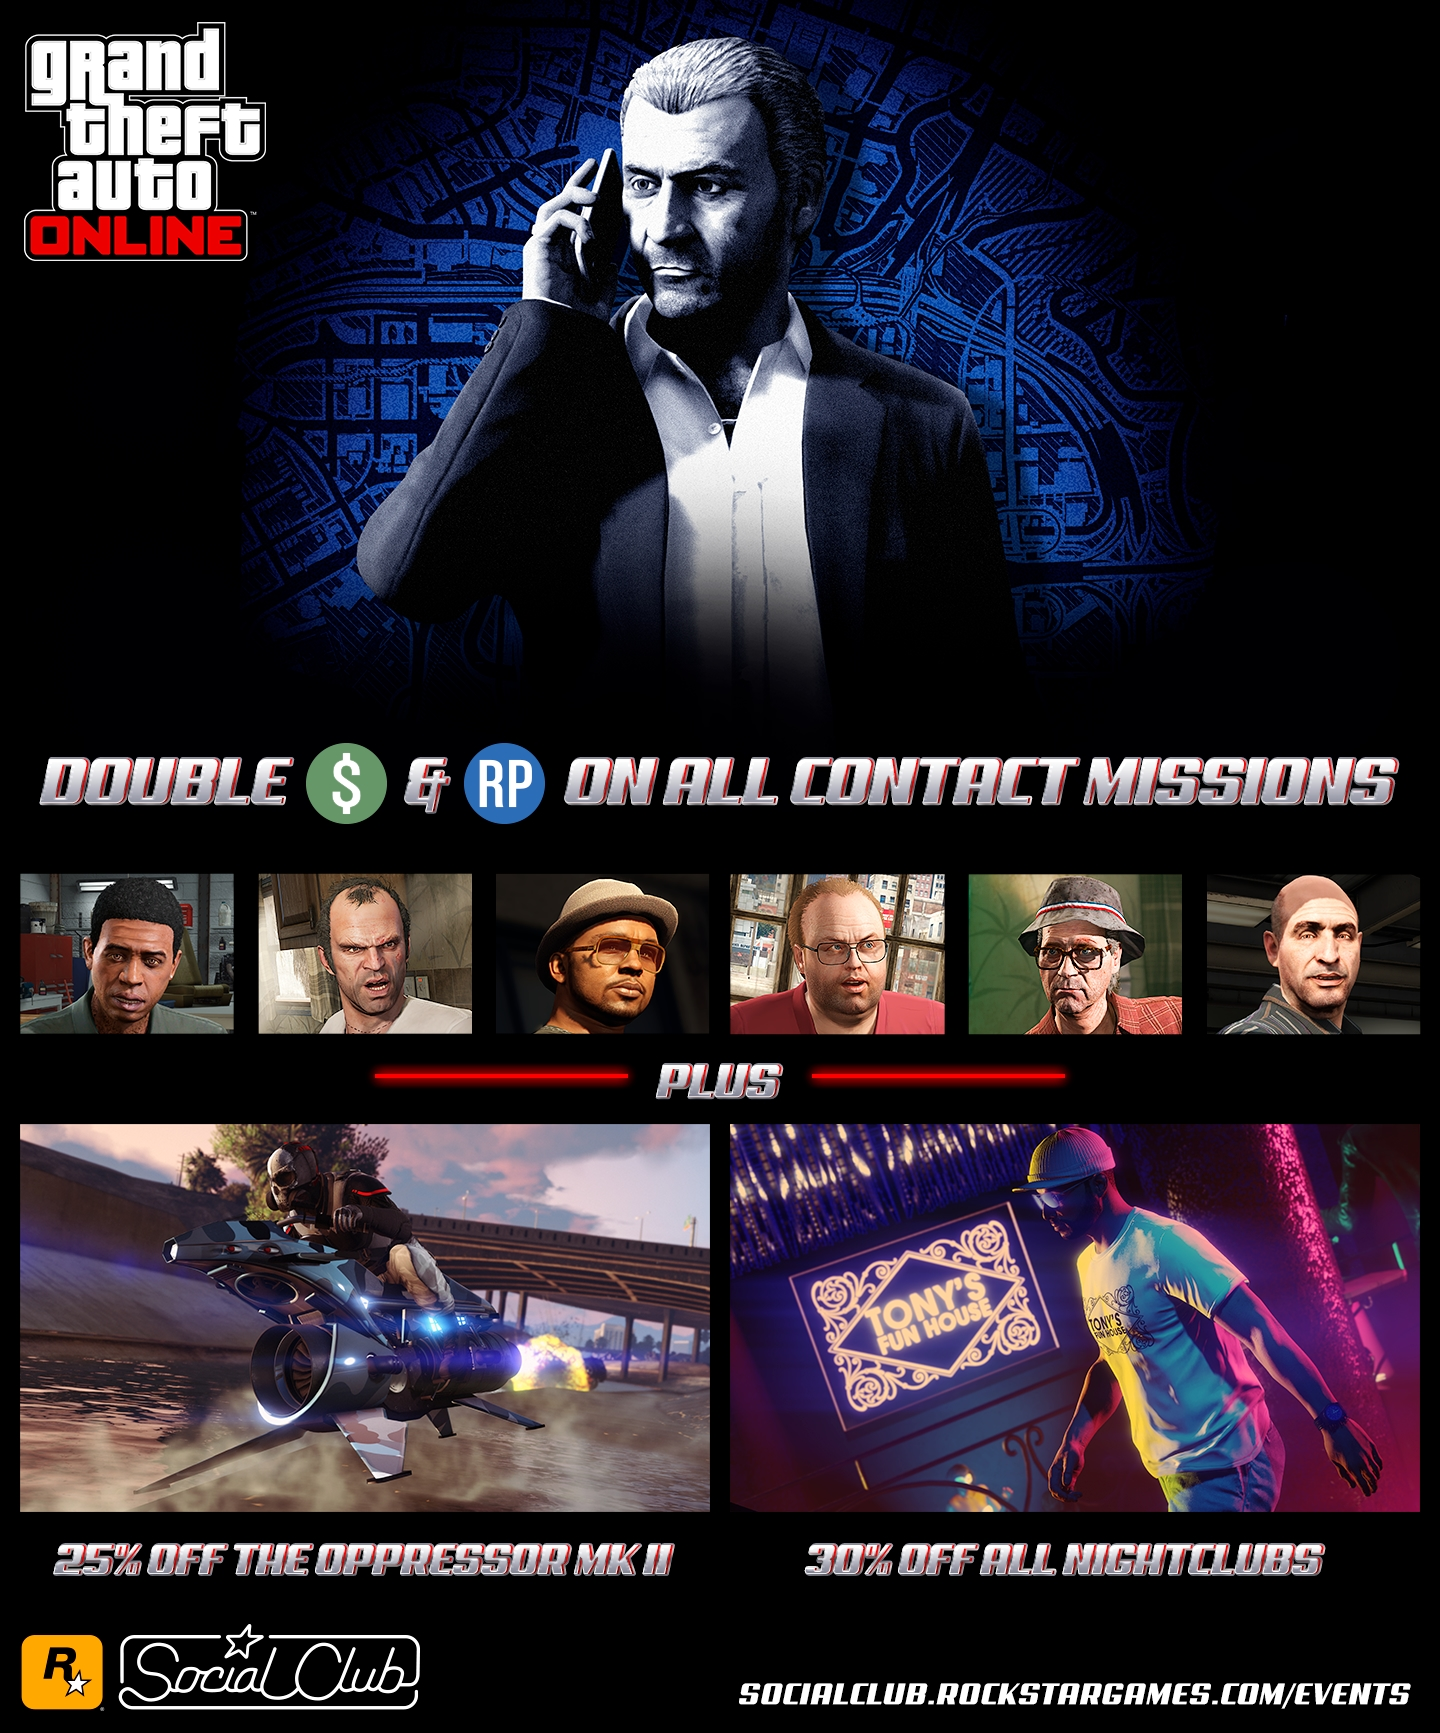 Double GTA$ & RP on All Contact Missions, Client Jobs & Rockstar